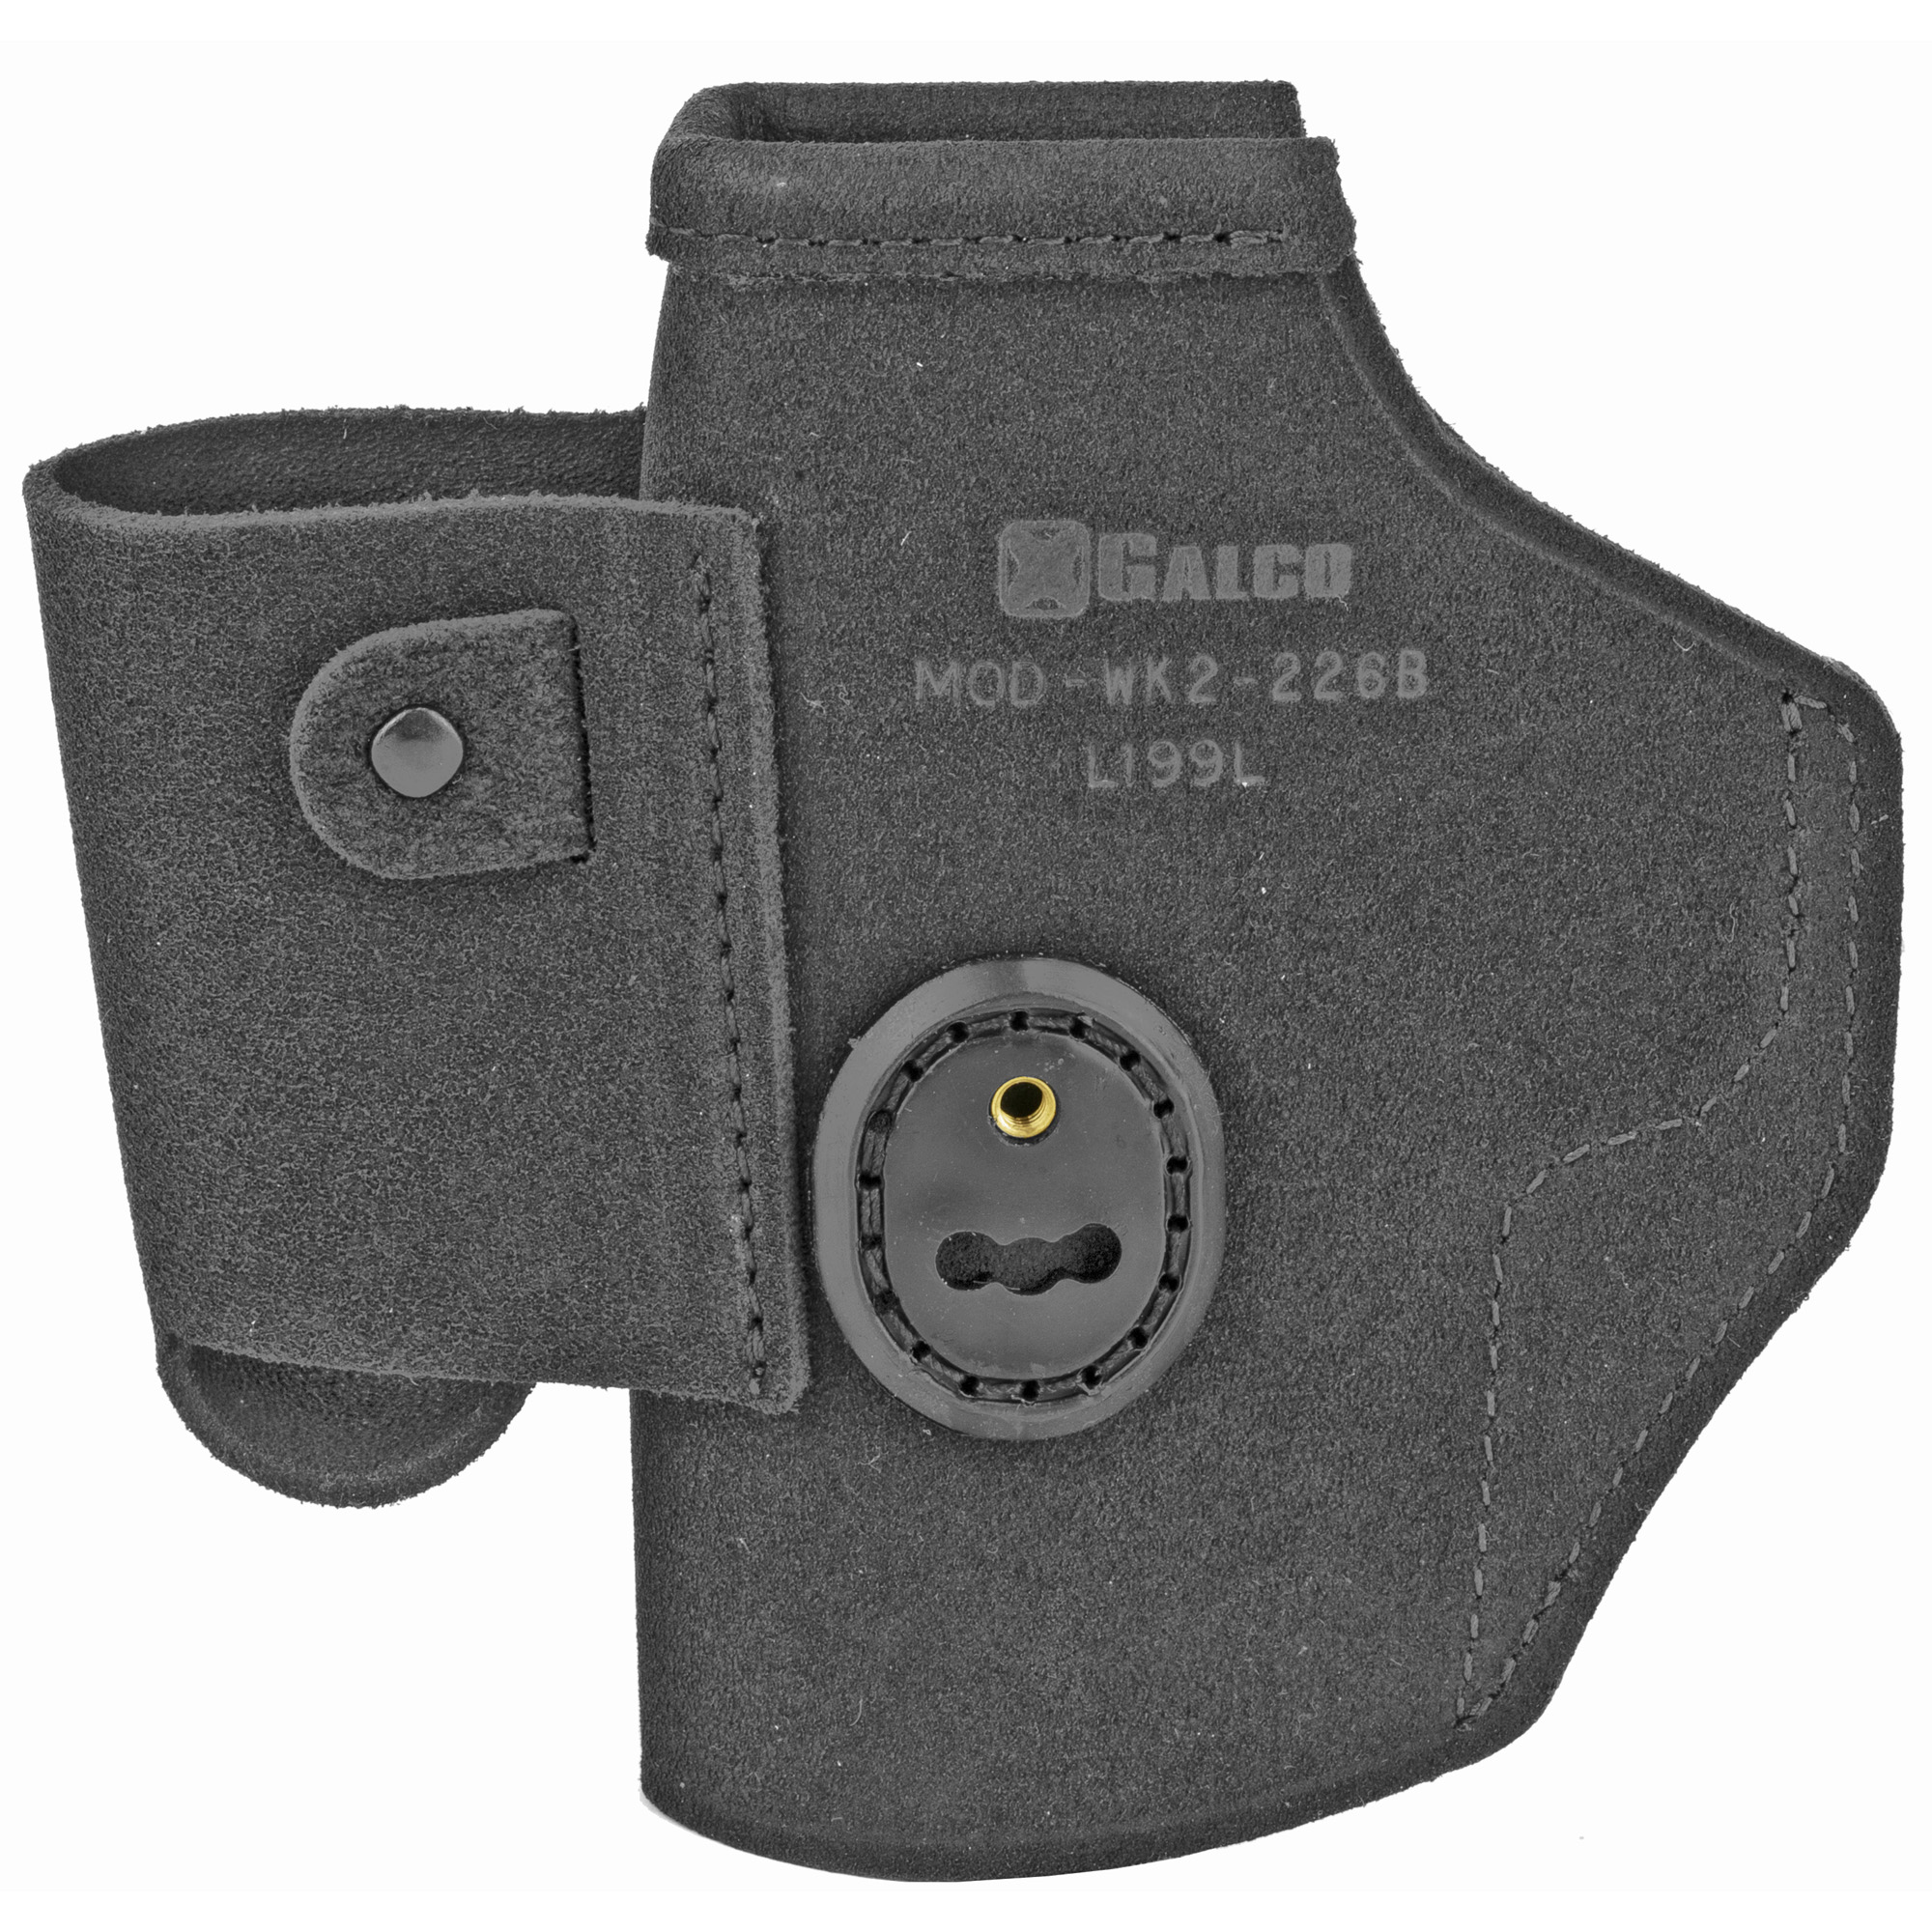 Galco Walkabout 2.0 For G19 Ambi Blk